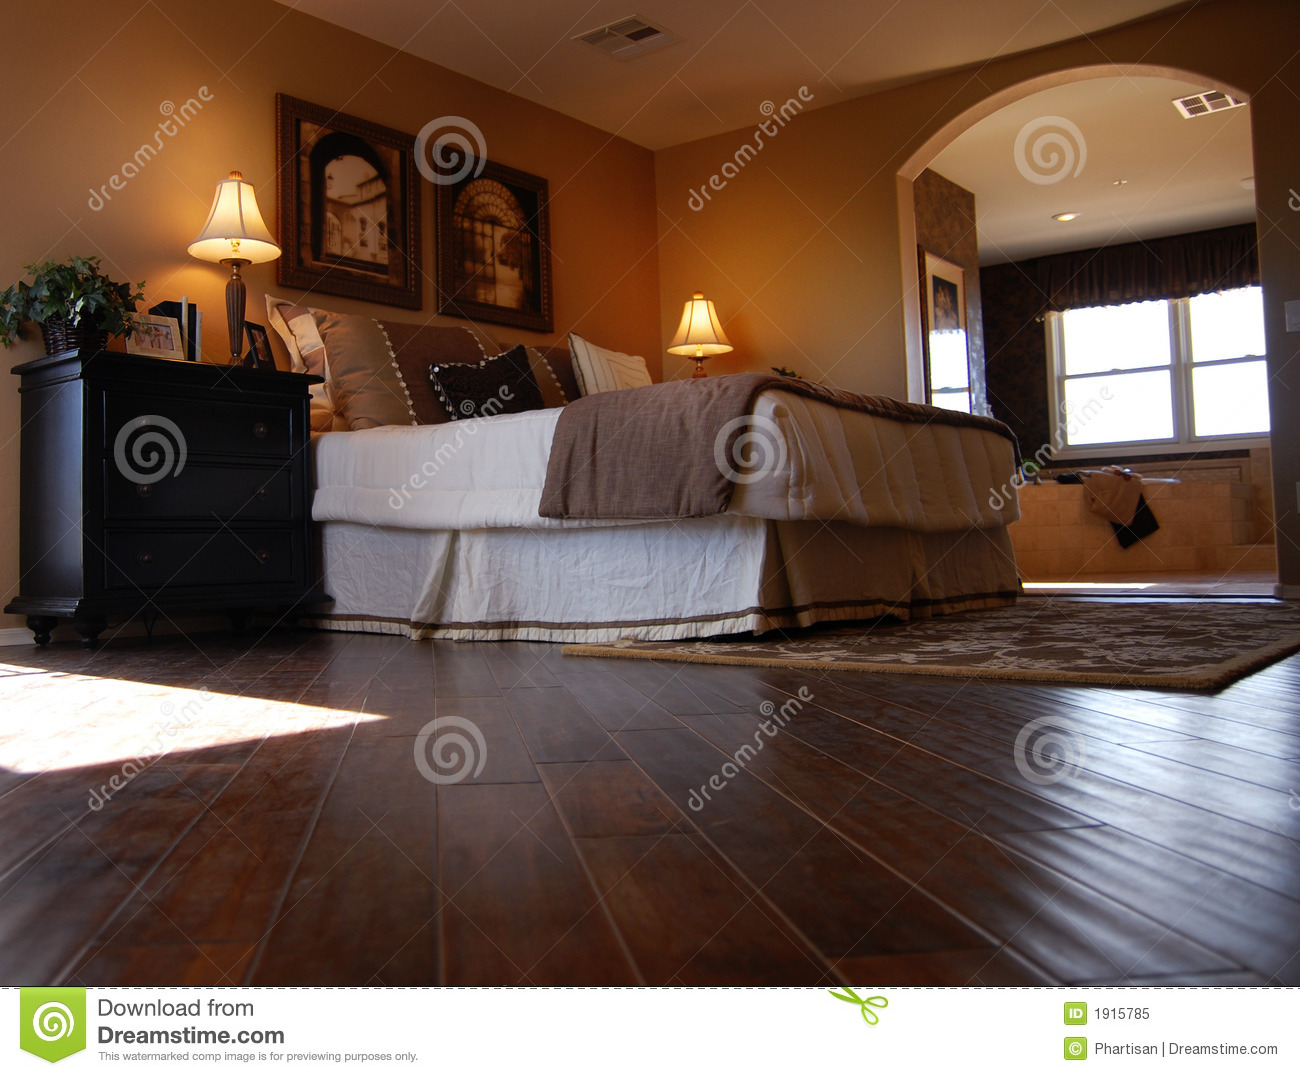 luxury bedroom with hardwood flooring royalty free stock photo image 1915785. Black Bedroom Furniture Sets. Home Design Ideas